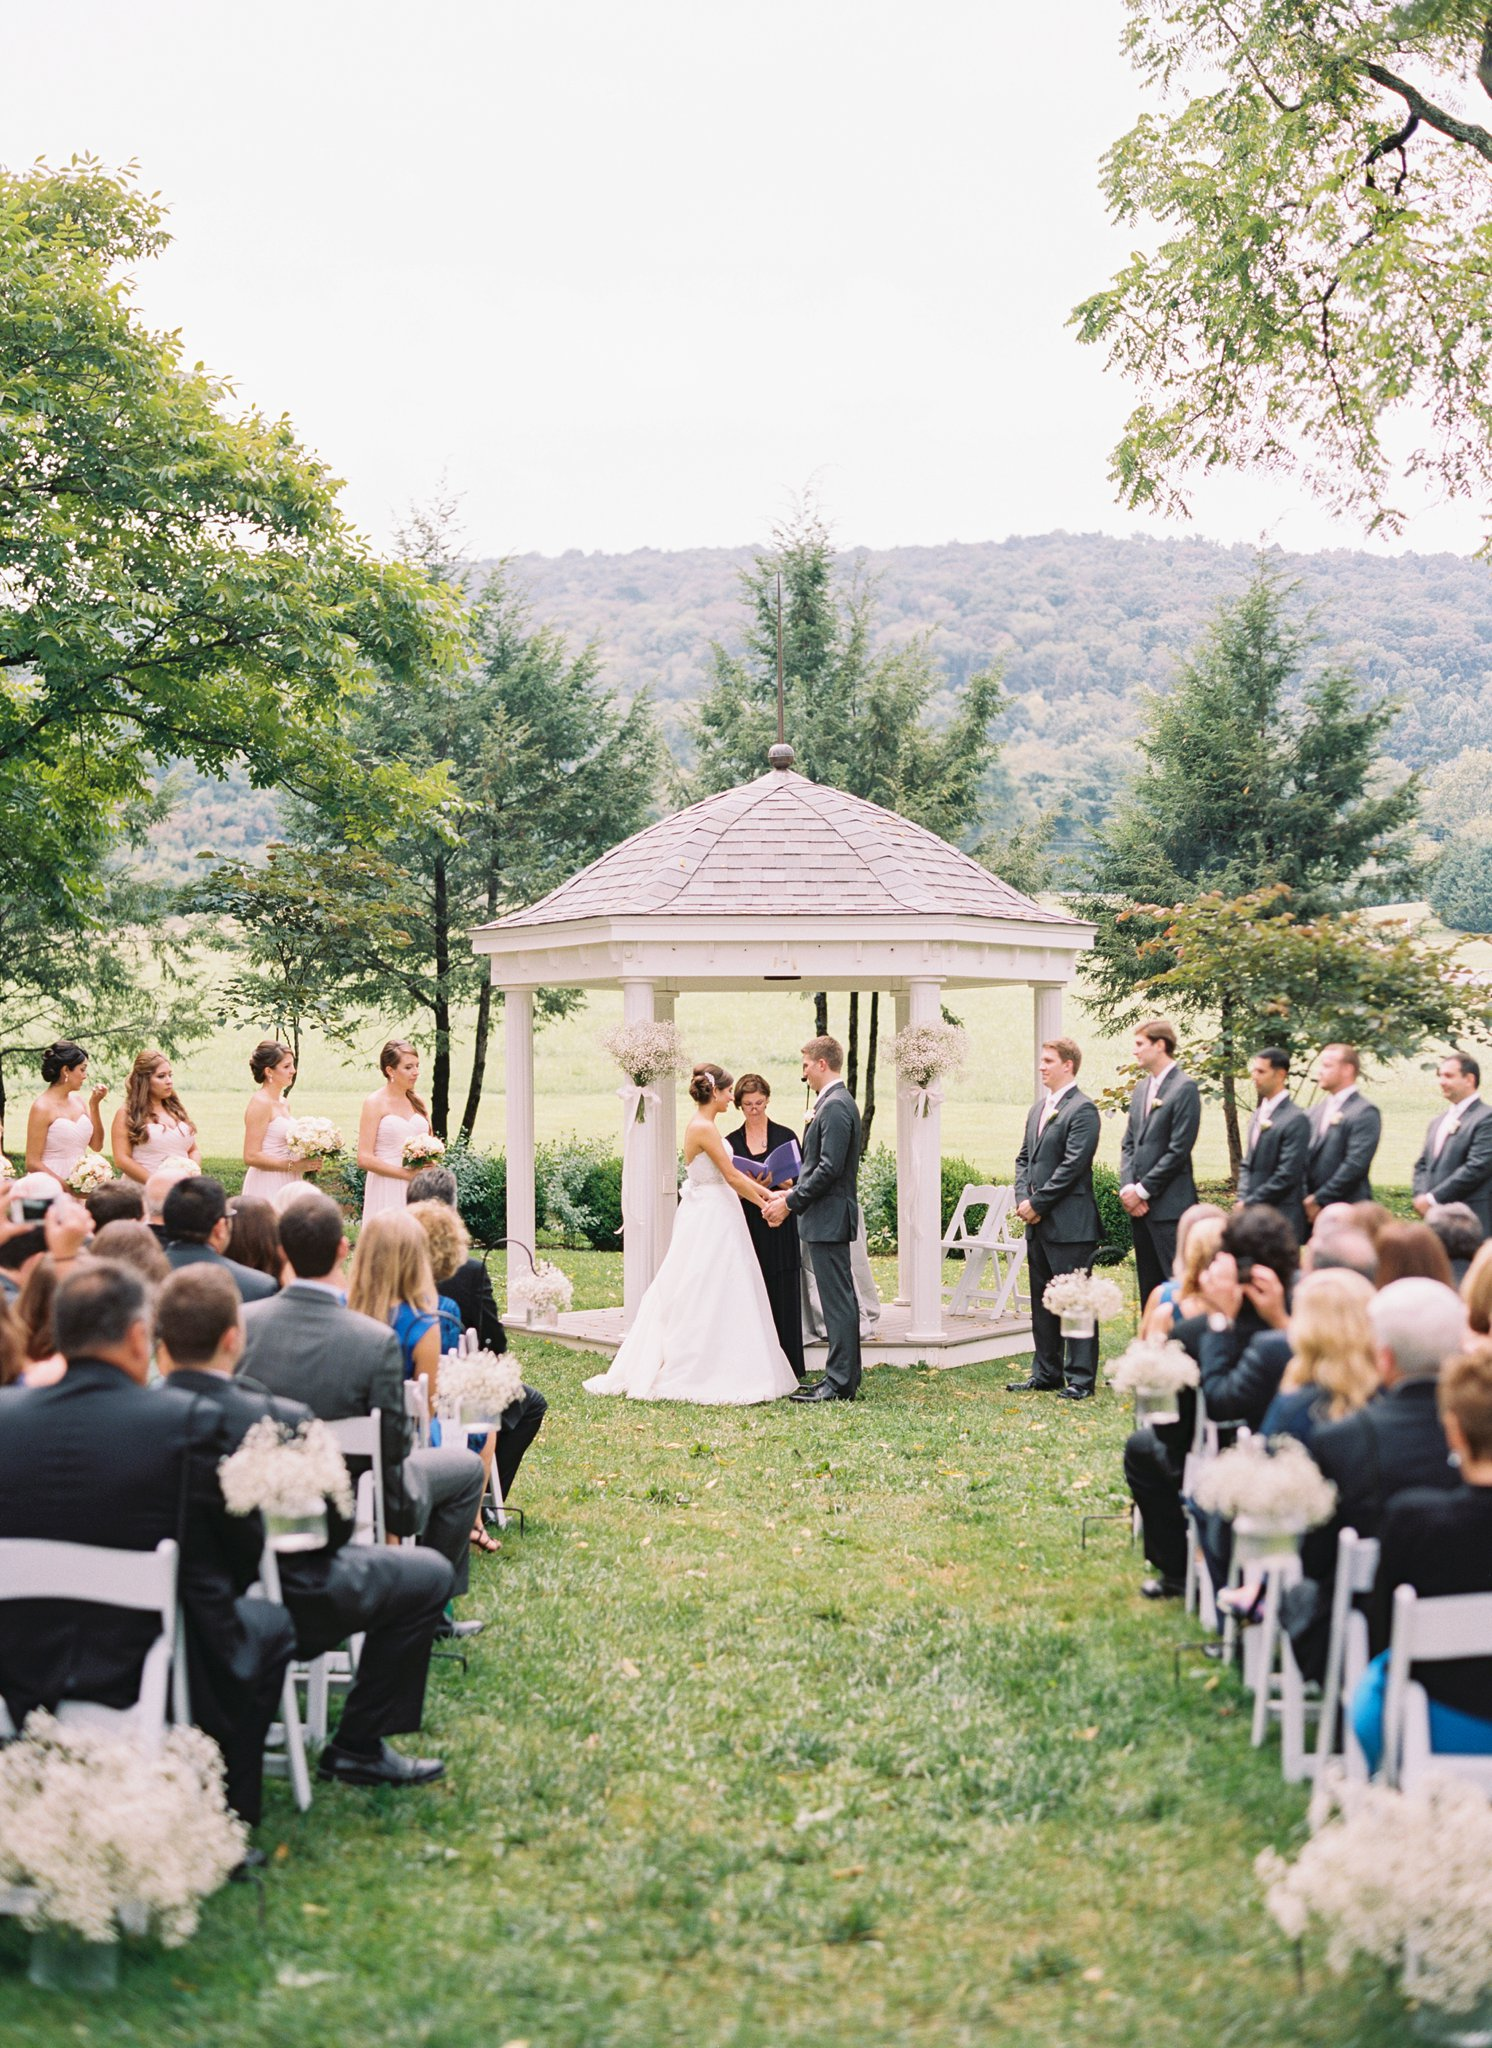 Outdoor Wedding Ideas, DC Wedding Planning by Bright Occasions, Photo by Jodi and Kurt Photography